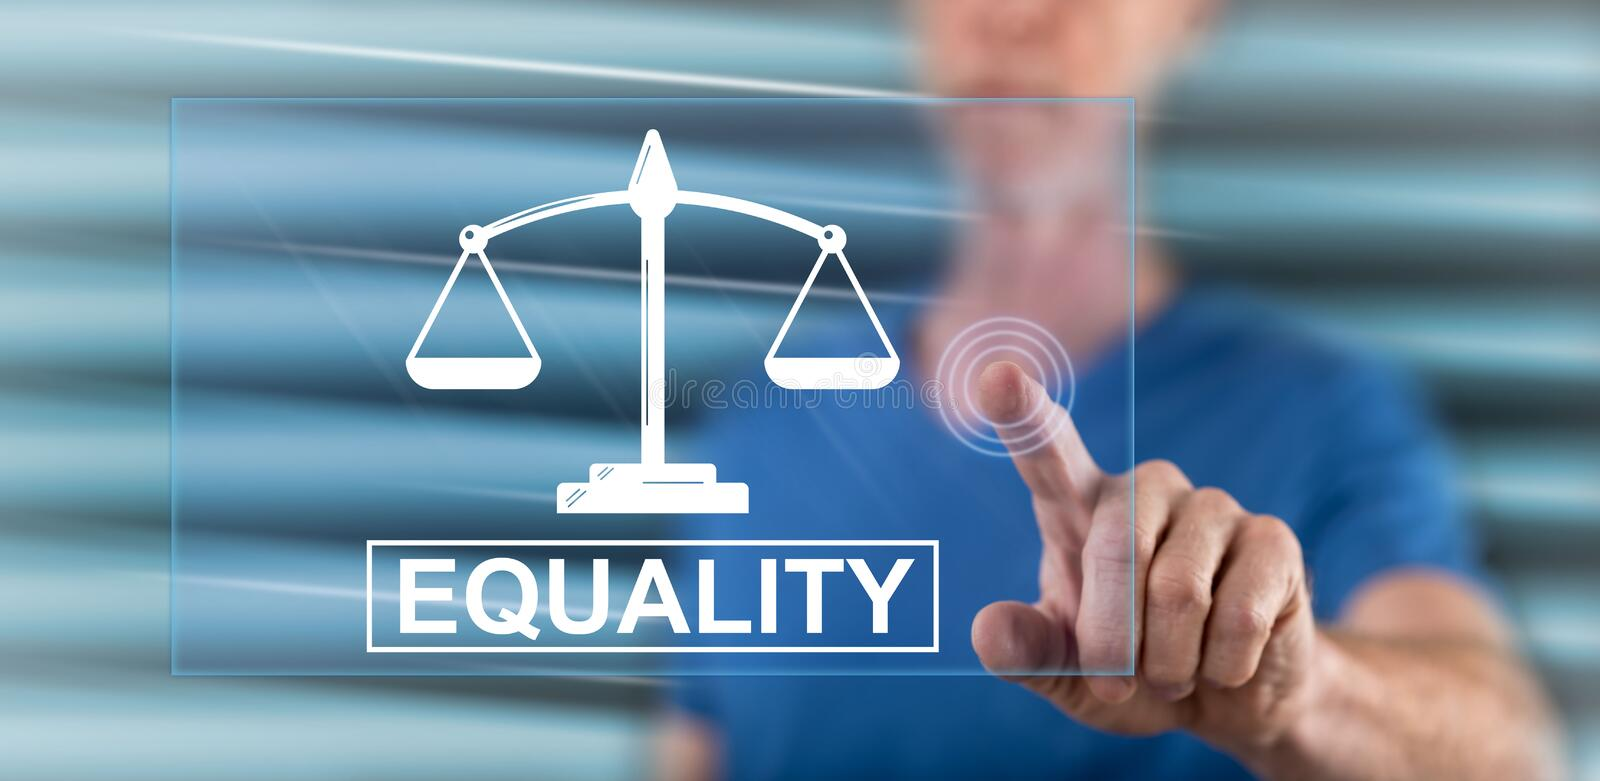 Man touching an equality concept stock image